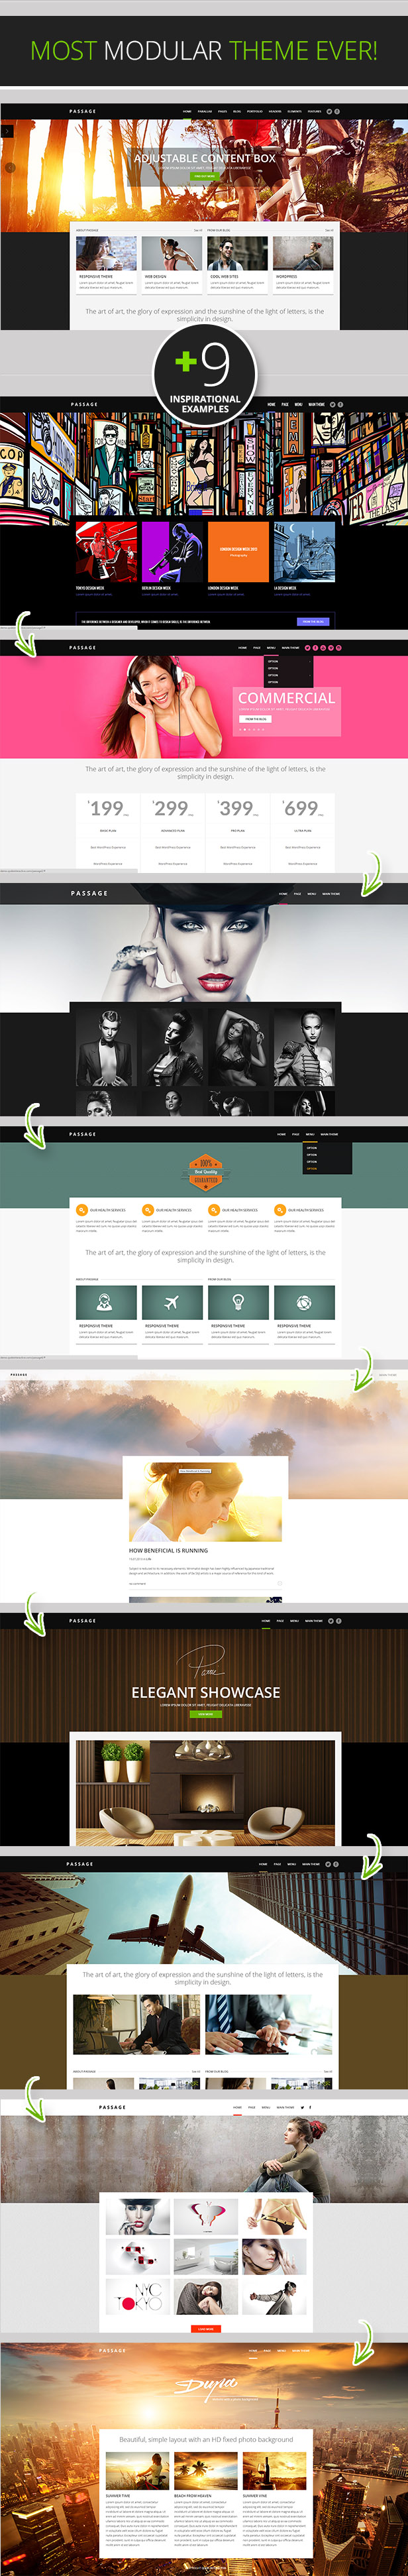 Passage - Responsive Retina Multi-Purpose Theme - 1